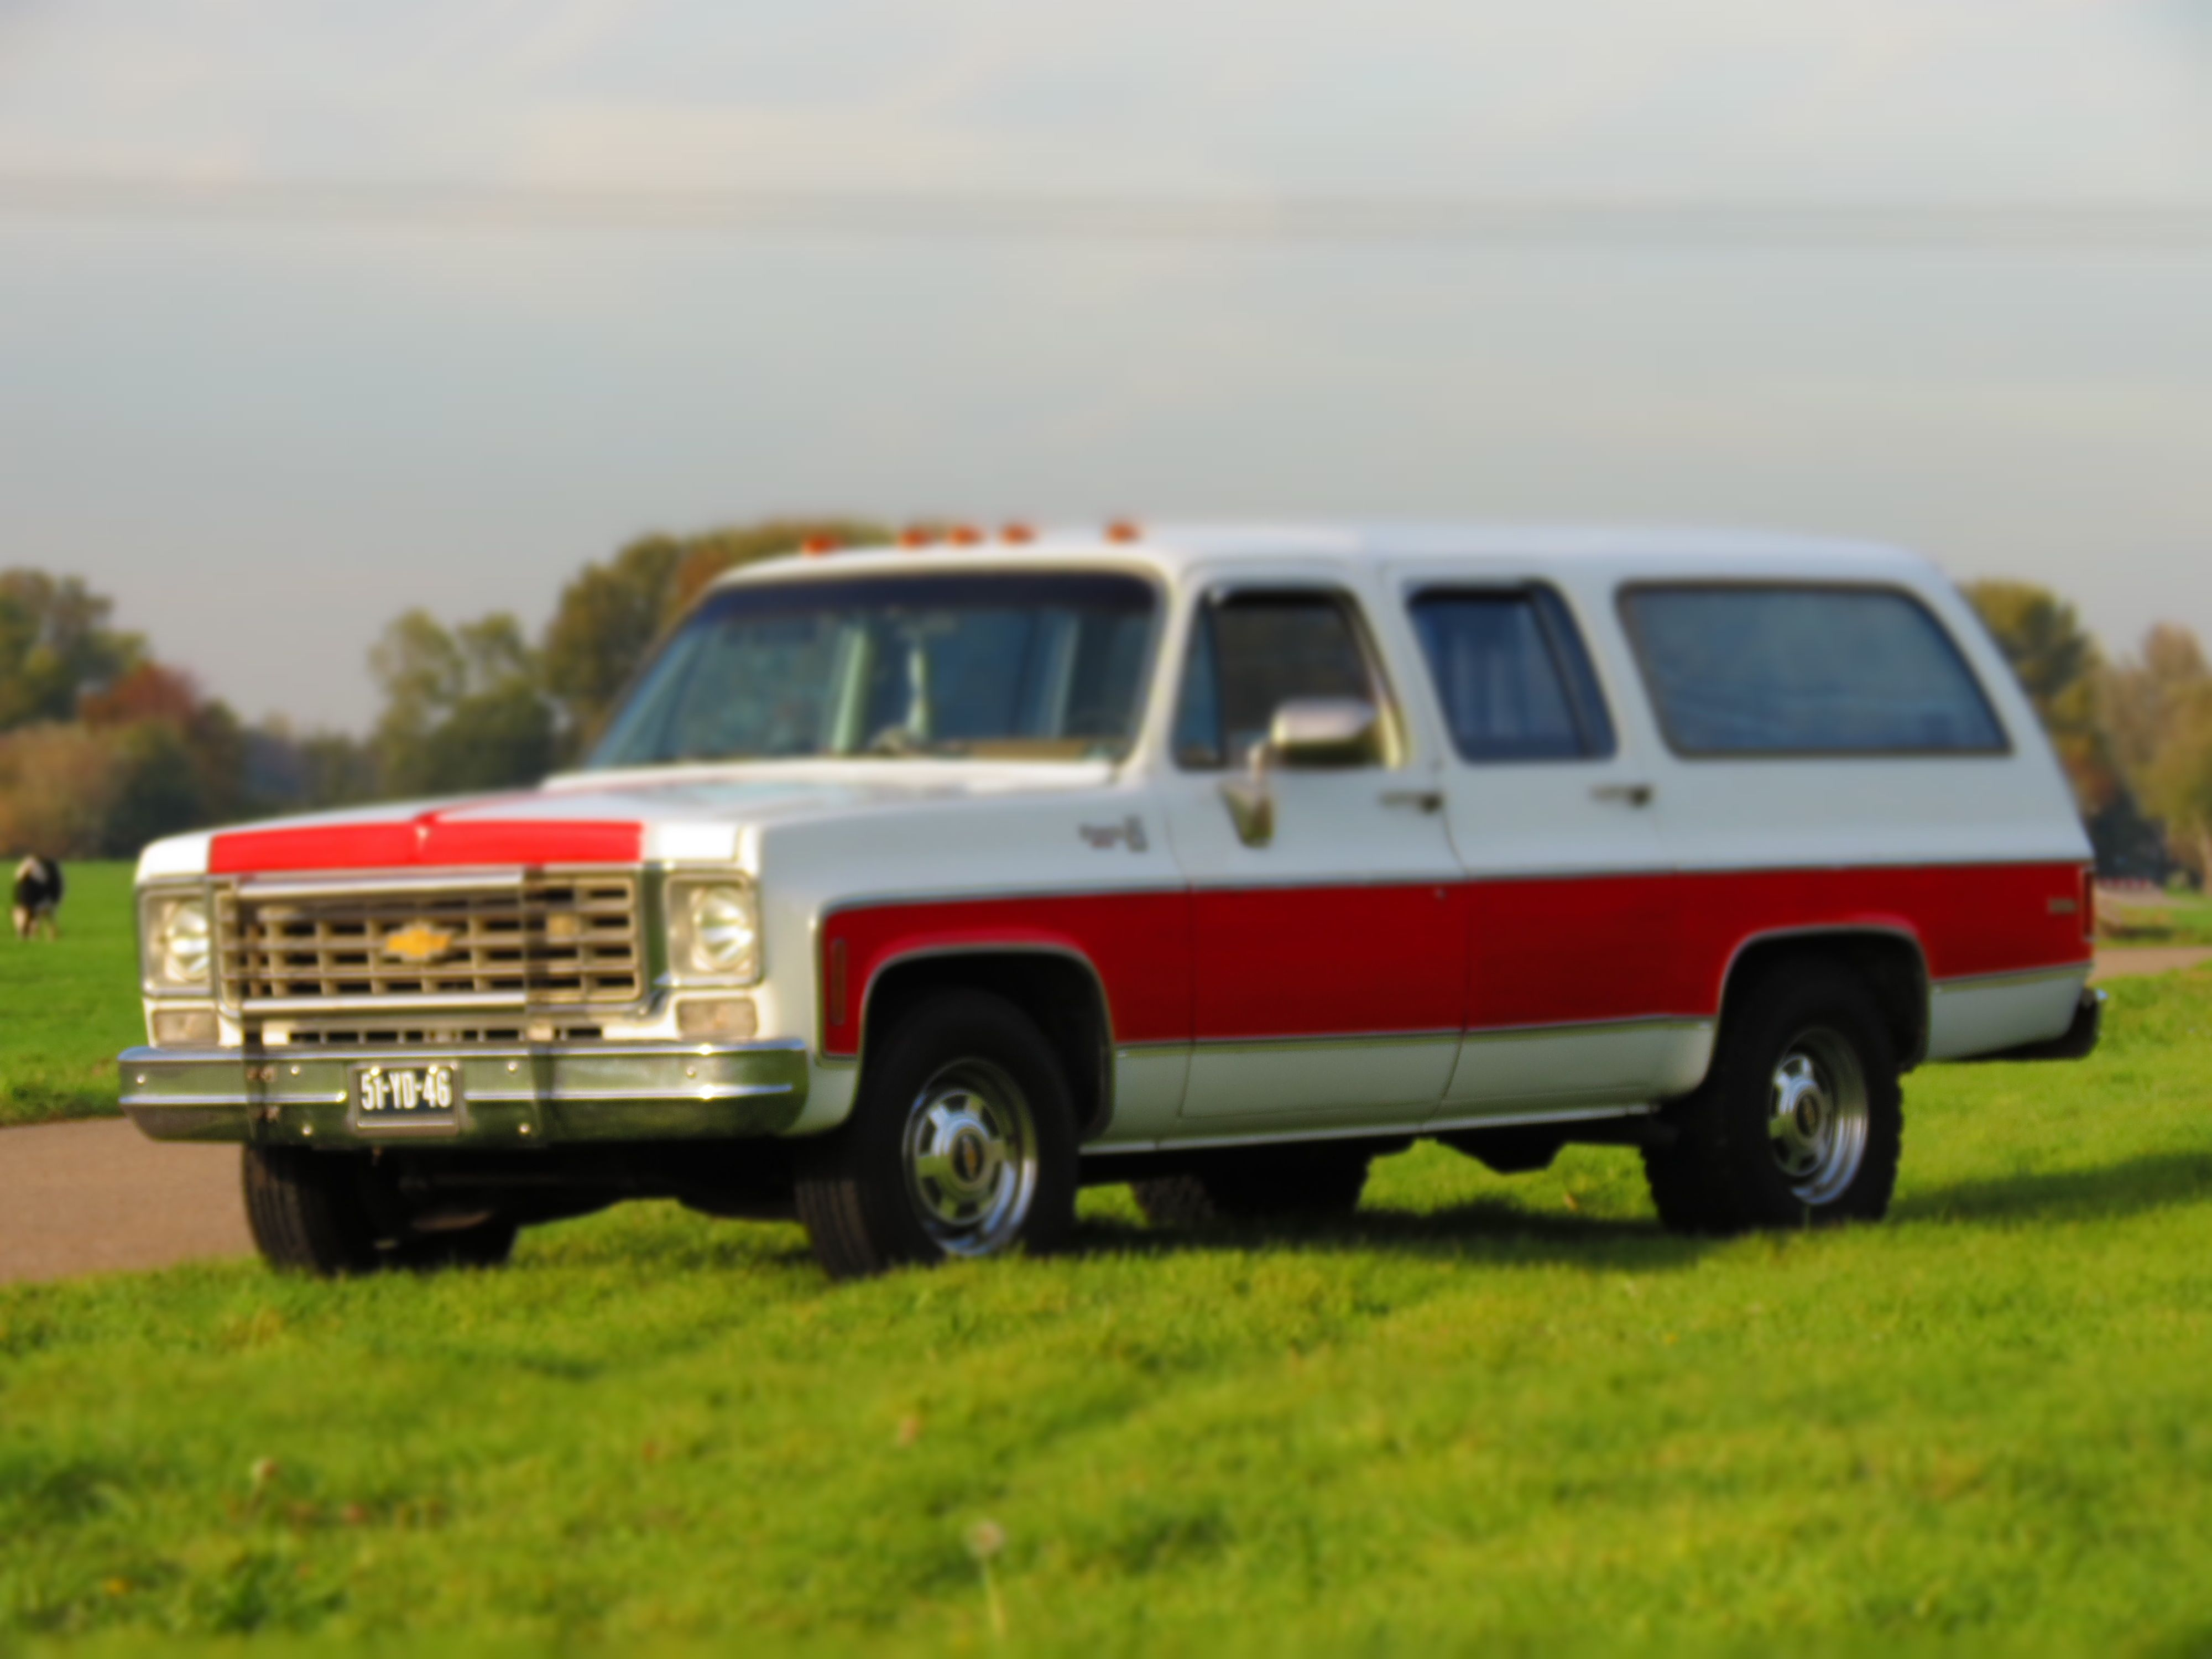 Chevrolet Suburban 1975 502 Engine 2018 Imported From California Usa To The Netherlands